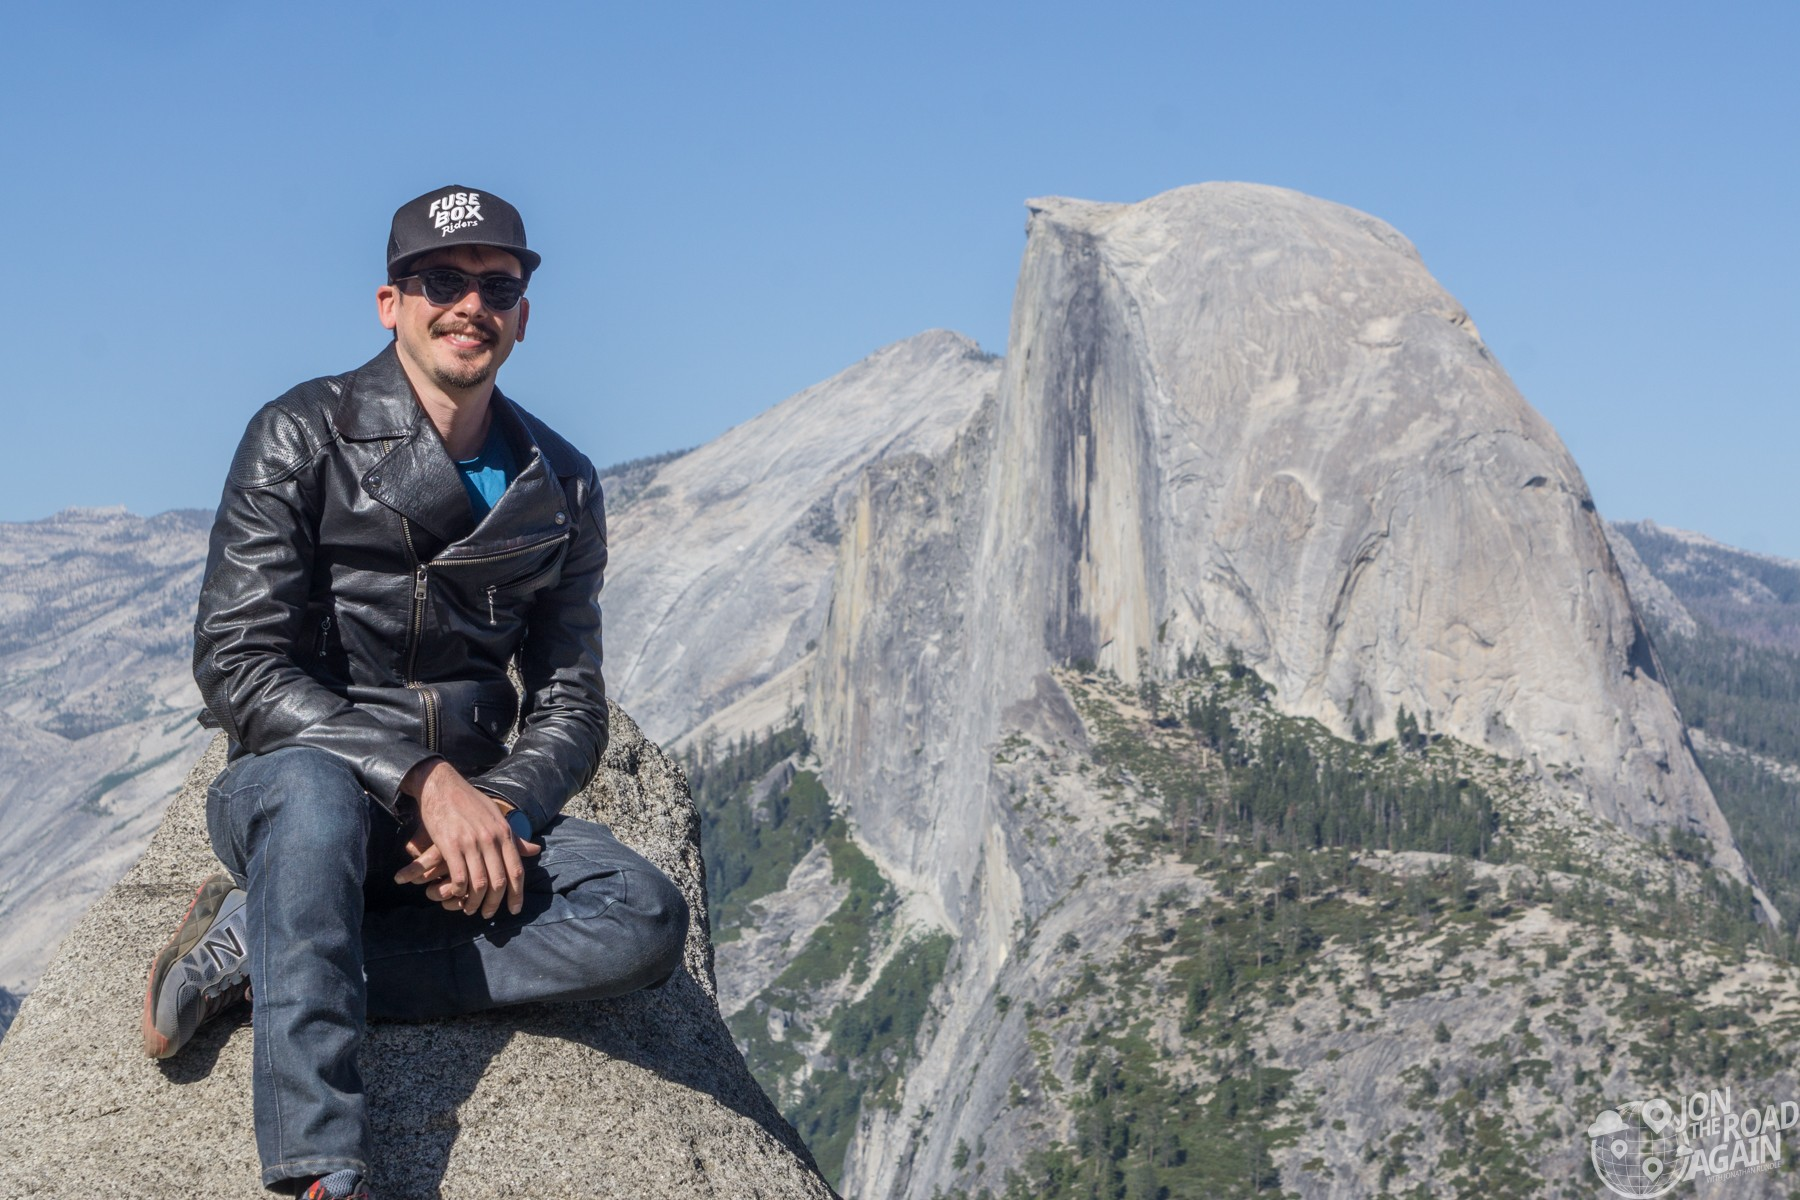 Instagram Poses at Half Dome